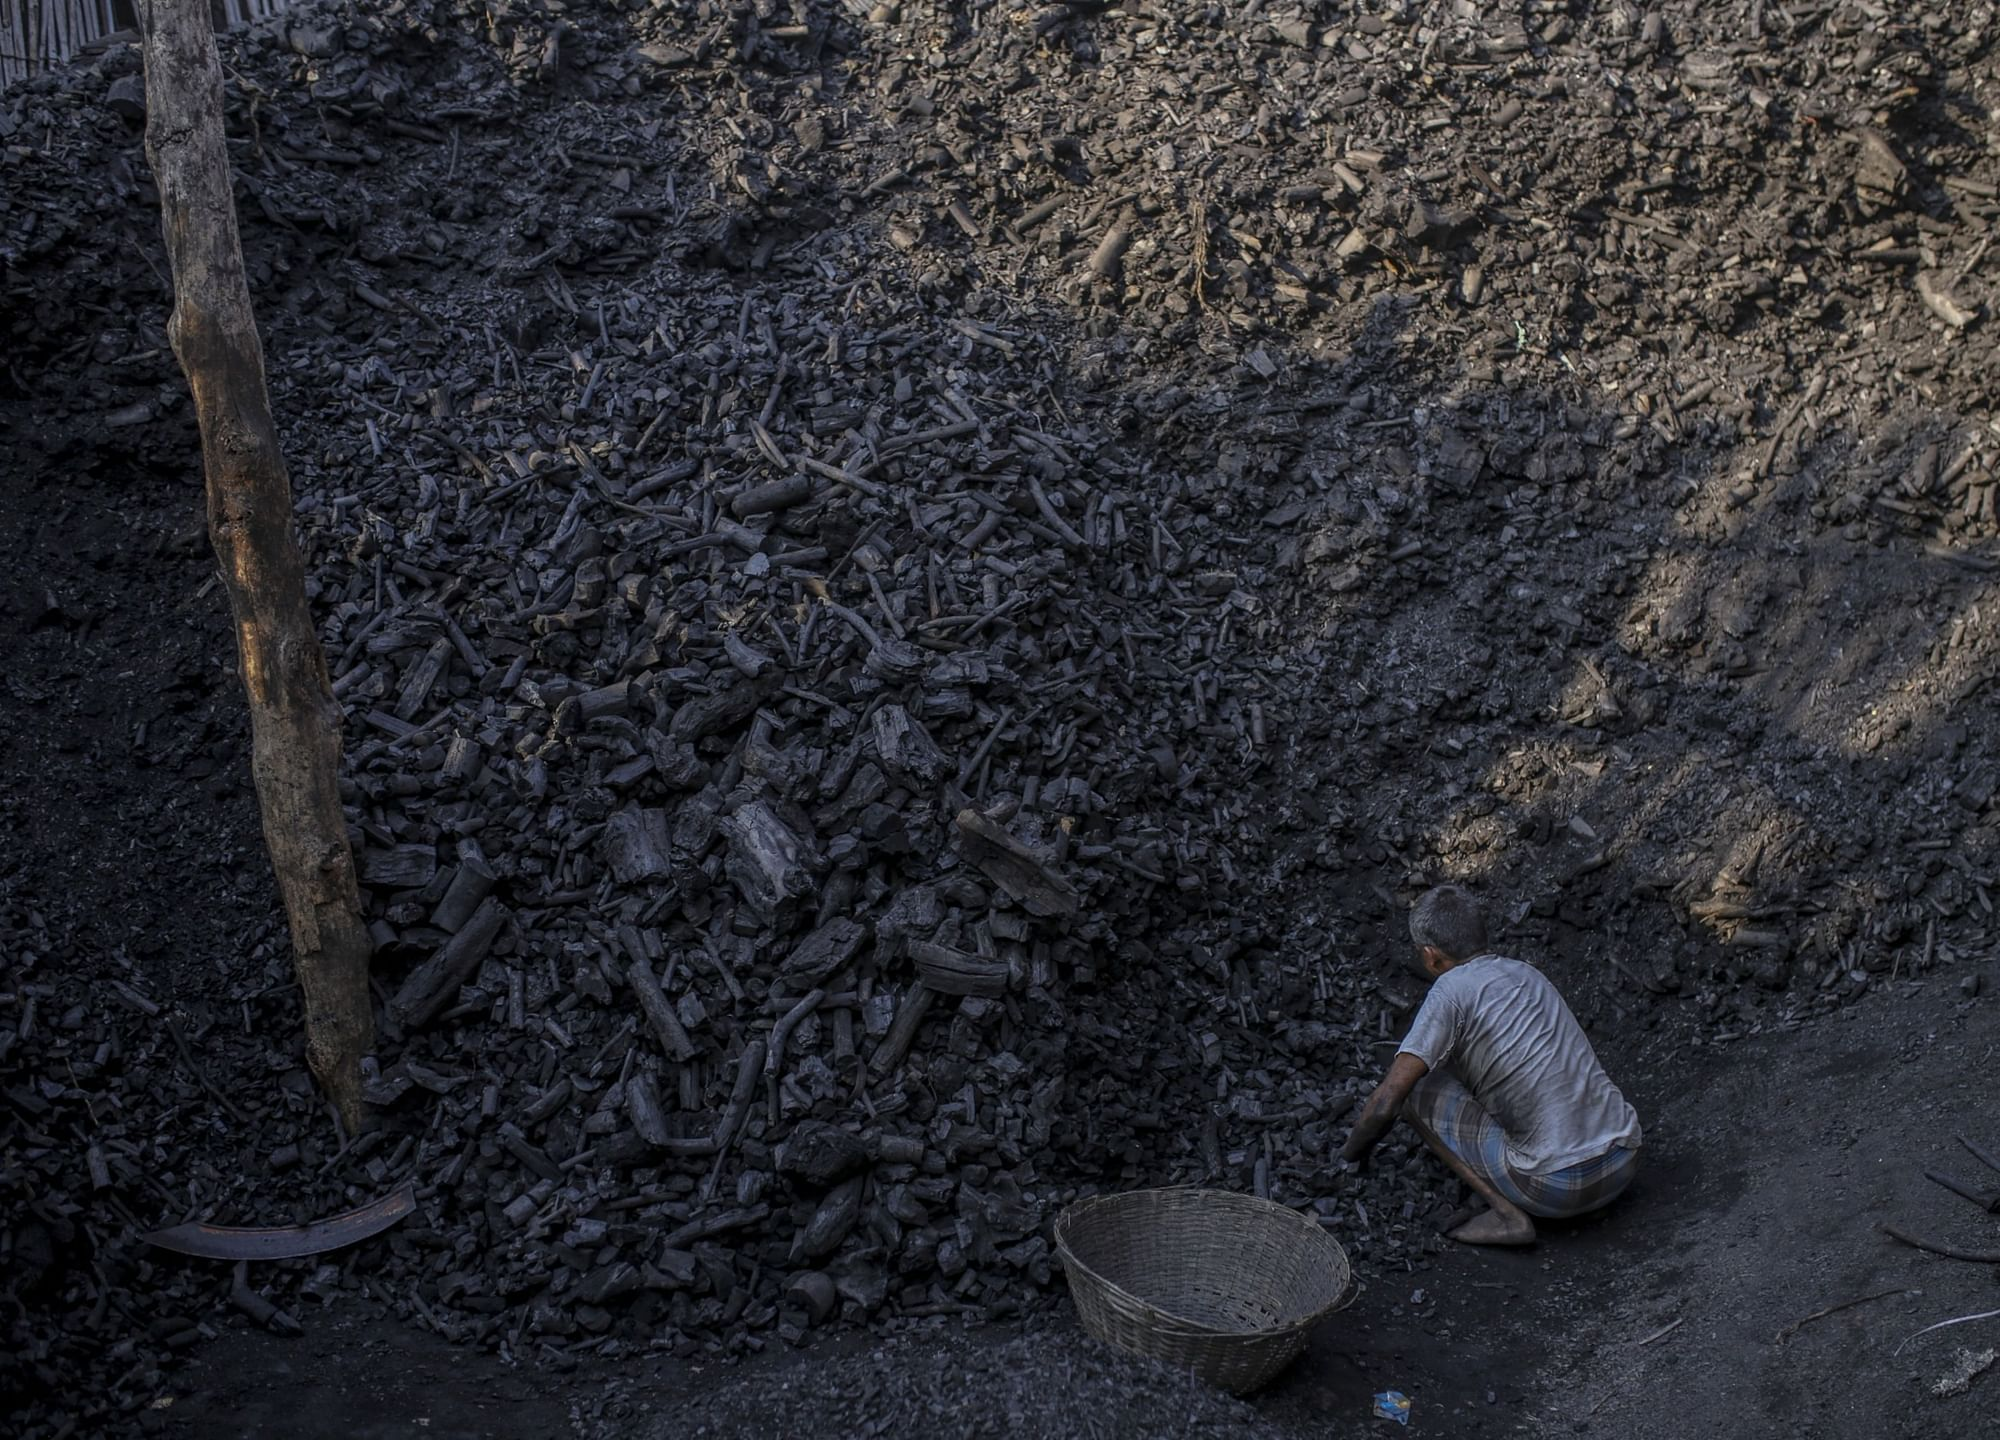 Consultative Meetings To Discuss Commercial Coal Mining Methodology On Jan. 28-29